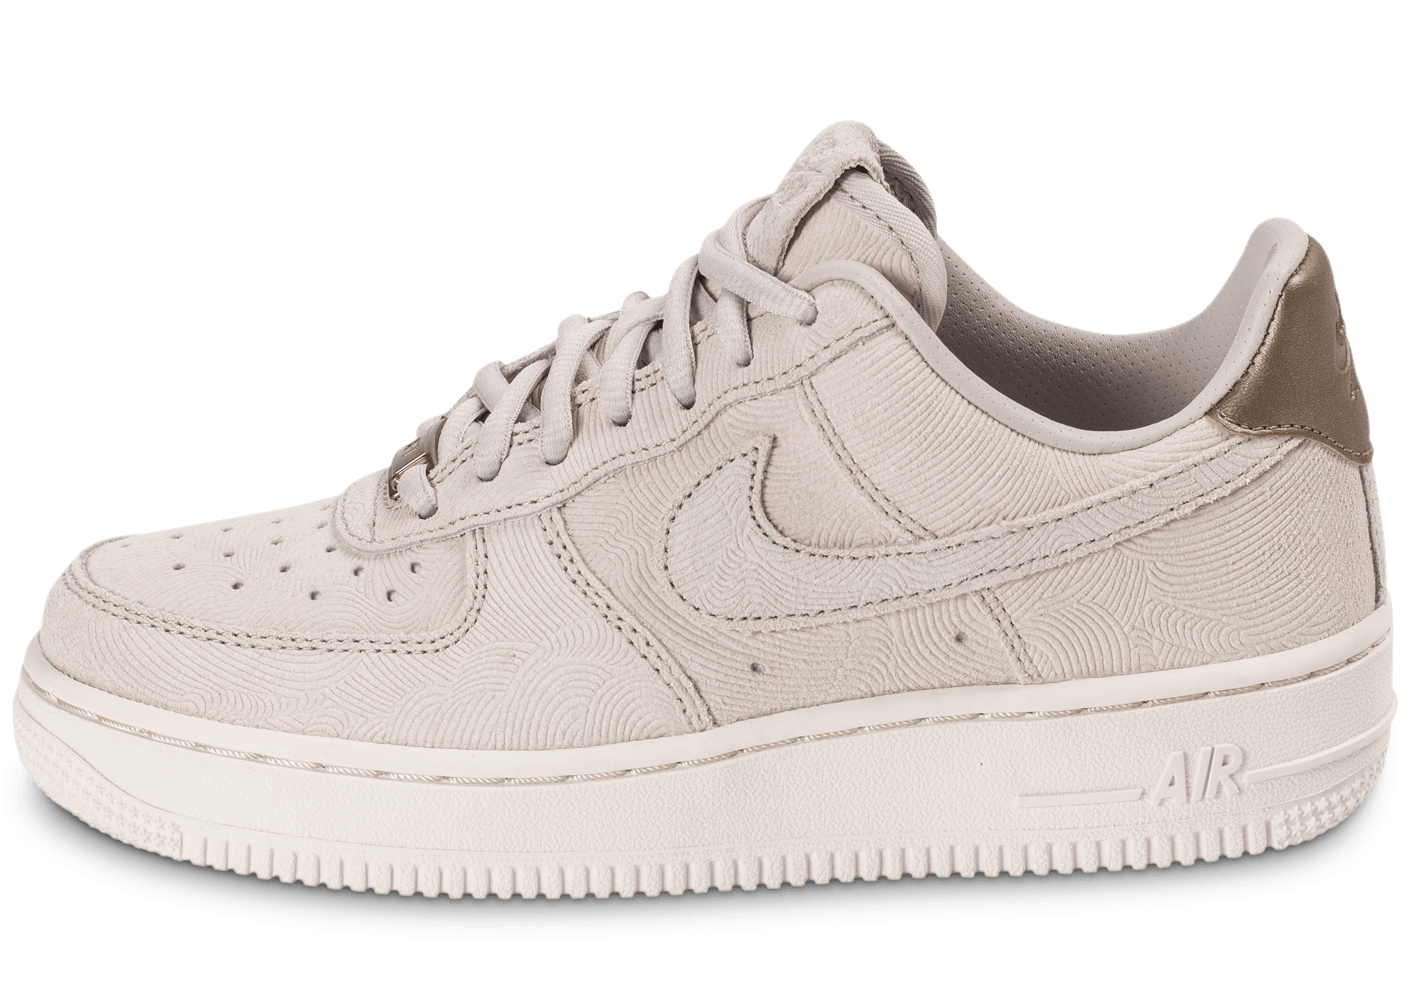 brand new ace80 9b080 Nike Air Force 1 Premium Suede Gamma grey - Chaussures Baskets femme -  Chausport